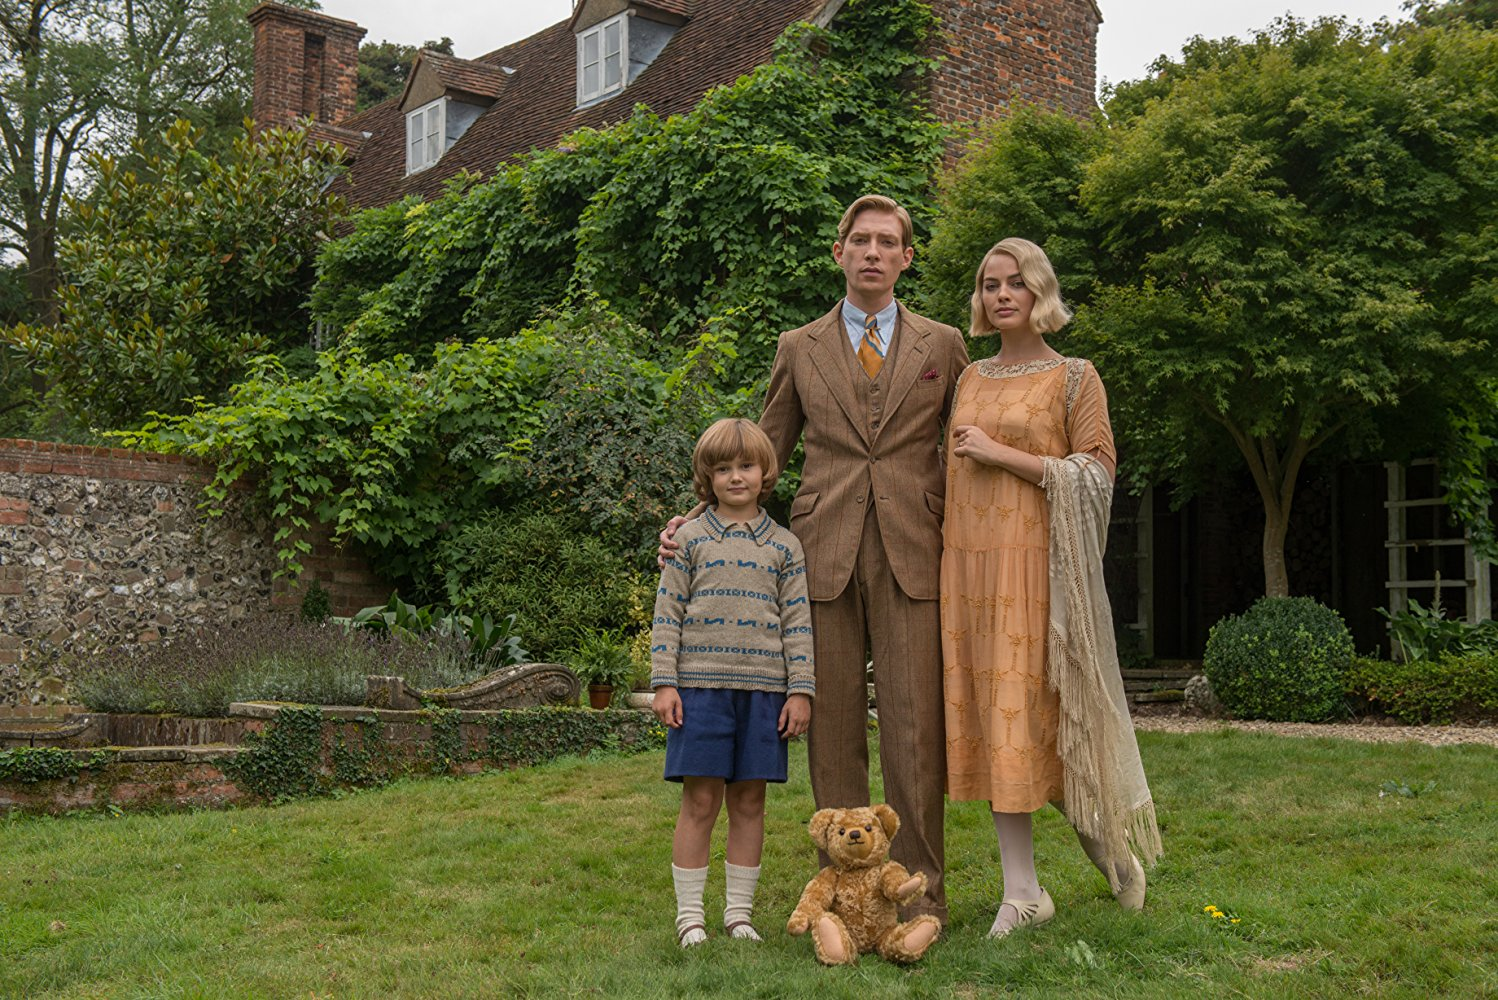 Goodbye Christopher Robin  (2017) with Domhall Gleeson, Margot Robbie, and Will Tilston. (IMDB)